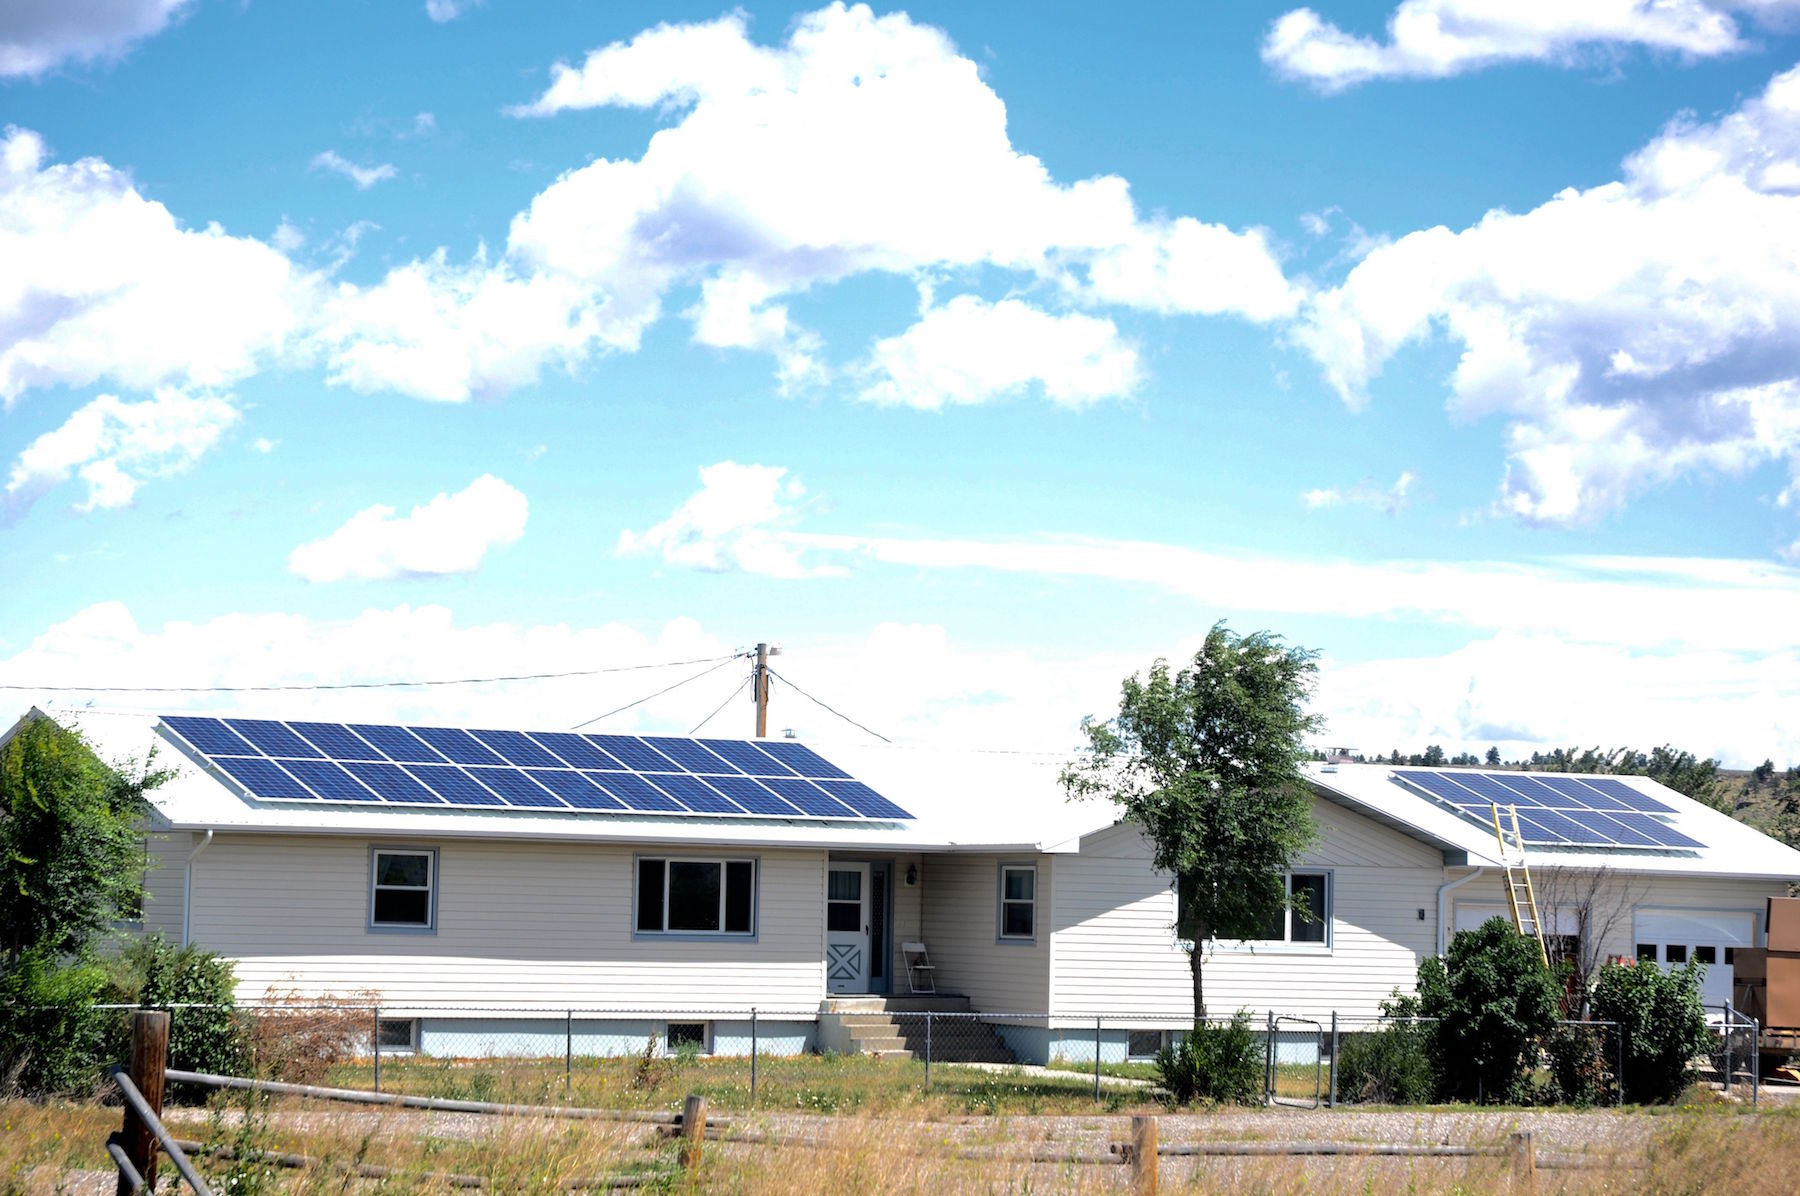 Cattle Ranch Installs First Solar Array in Mid-Yellowstone Electric Co-op